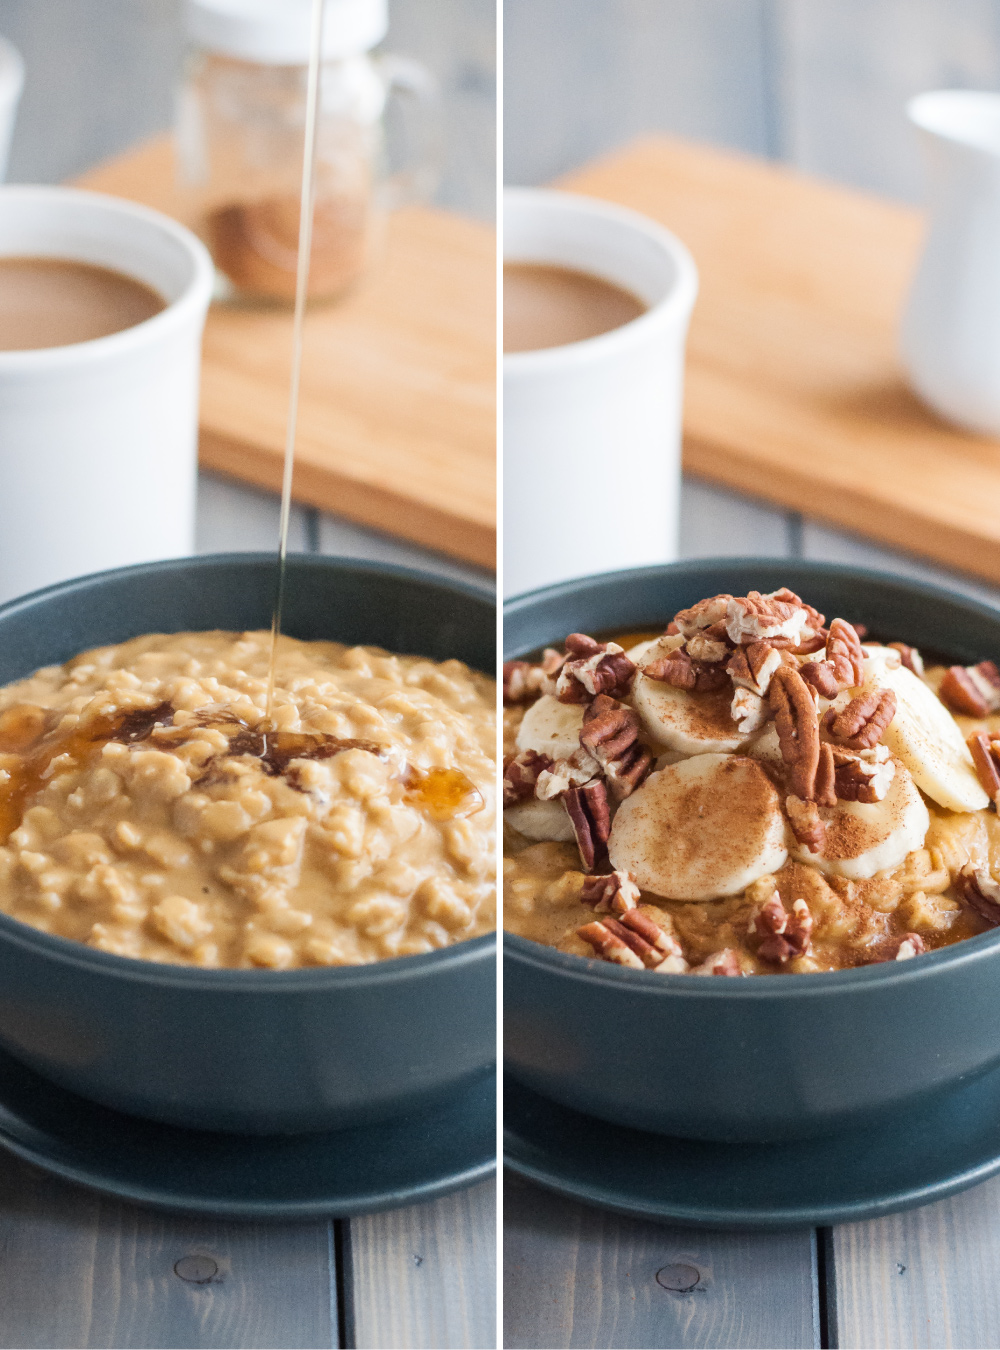 Easy maple pumpkin oatmeal with sun butter | Natural Comfort Kitchen | #quick #breakfast #glutenfree